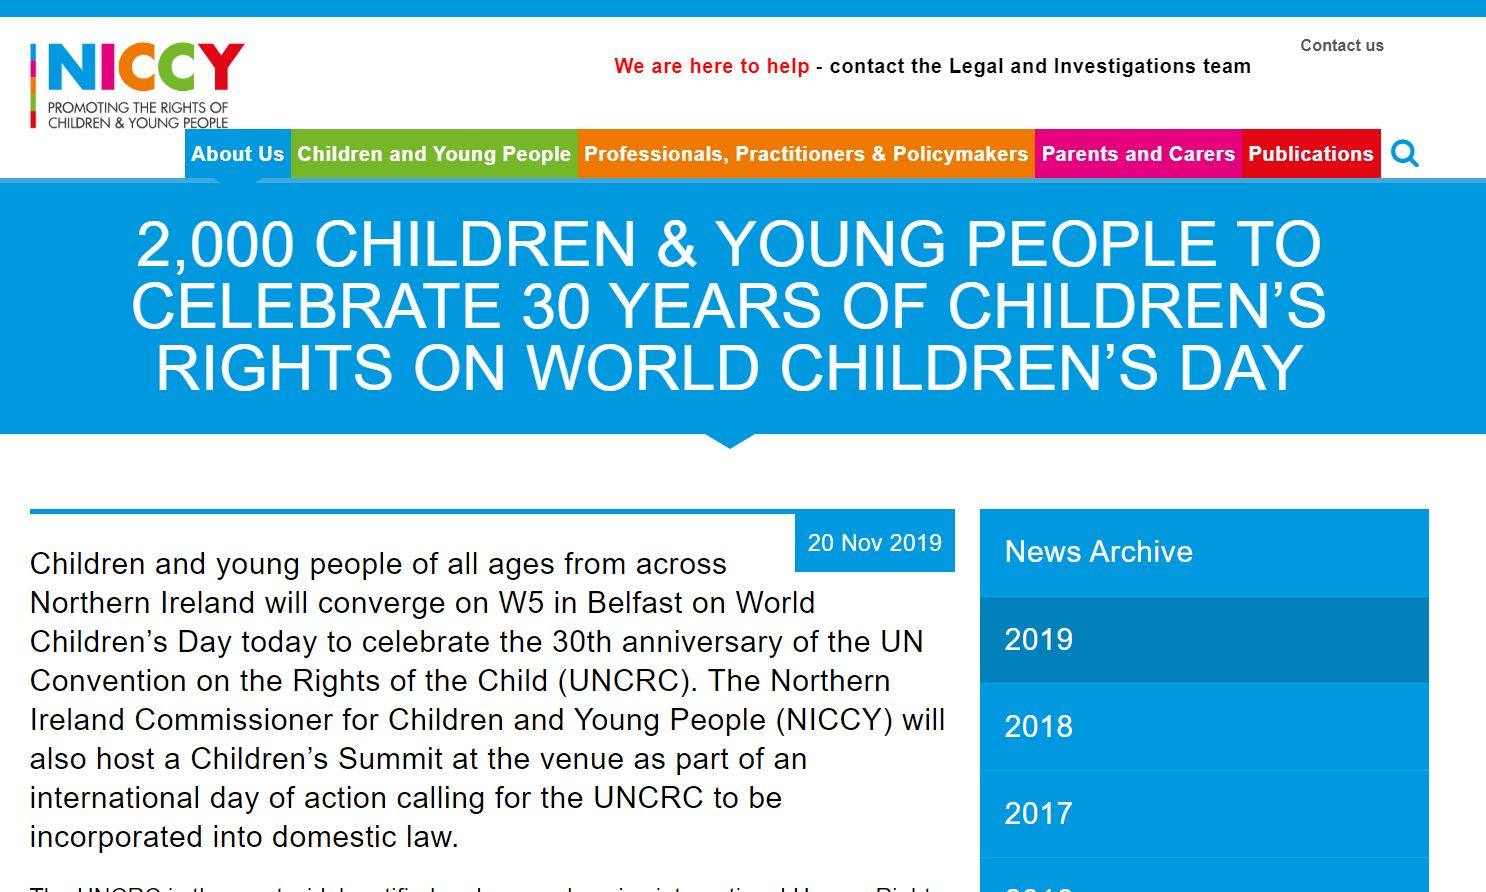 Image of 2,000 children & young people celebrate 30 years of children's rights on World Children's Day